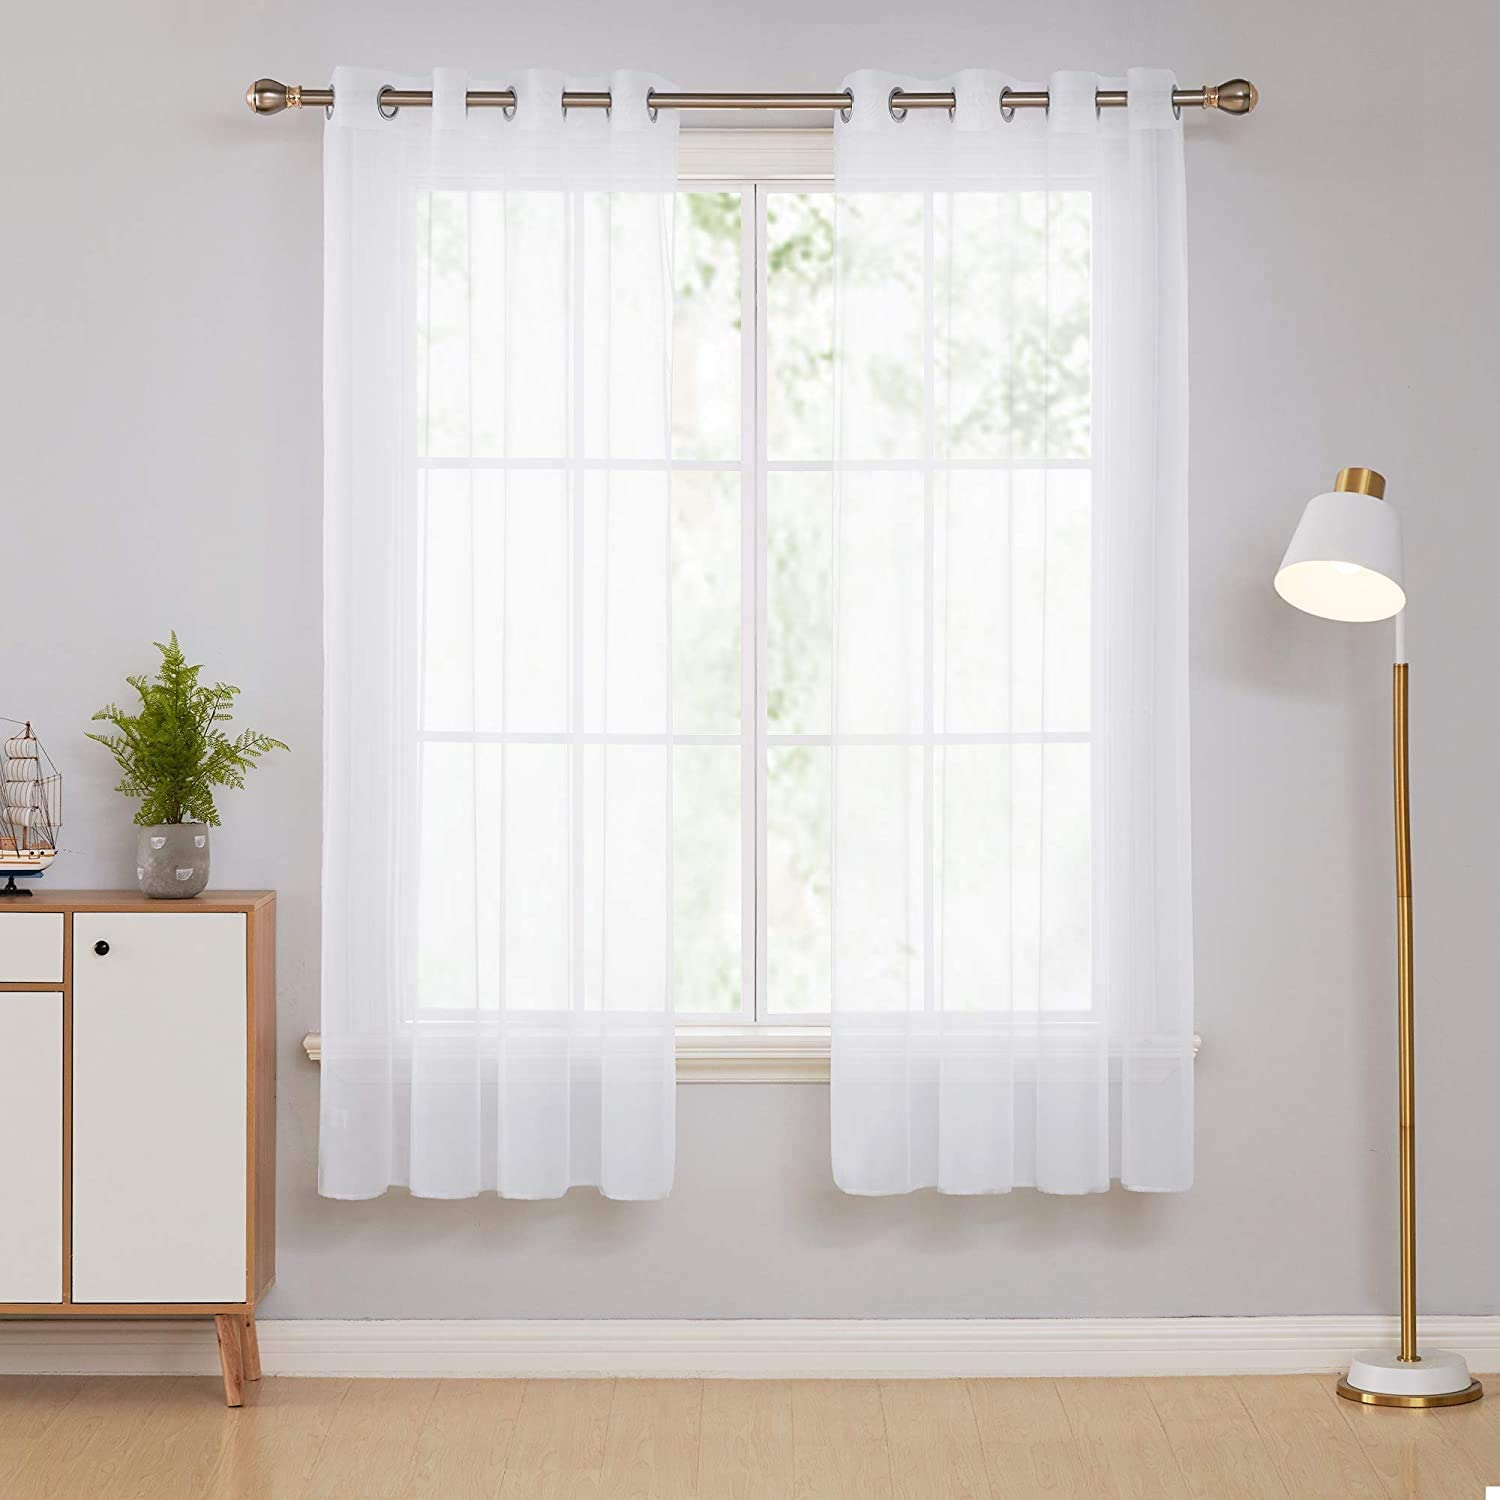 """Deconovo Sheer Curtains Solid Semi Transparent Voile Window Net Curtains Eyelet Semi Voile Curtains Decorative Super Soft Voile Curtains for Bedroom 52 x 63 Inch White 2 Panels 2x W52""""xL63"""" White"""